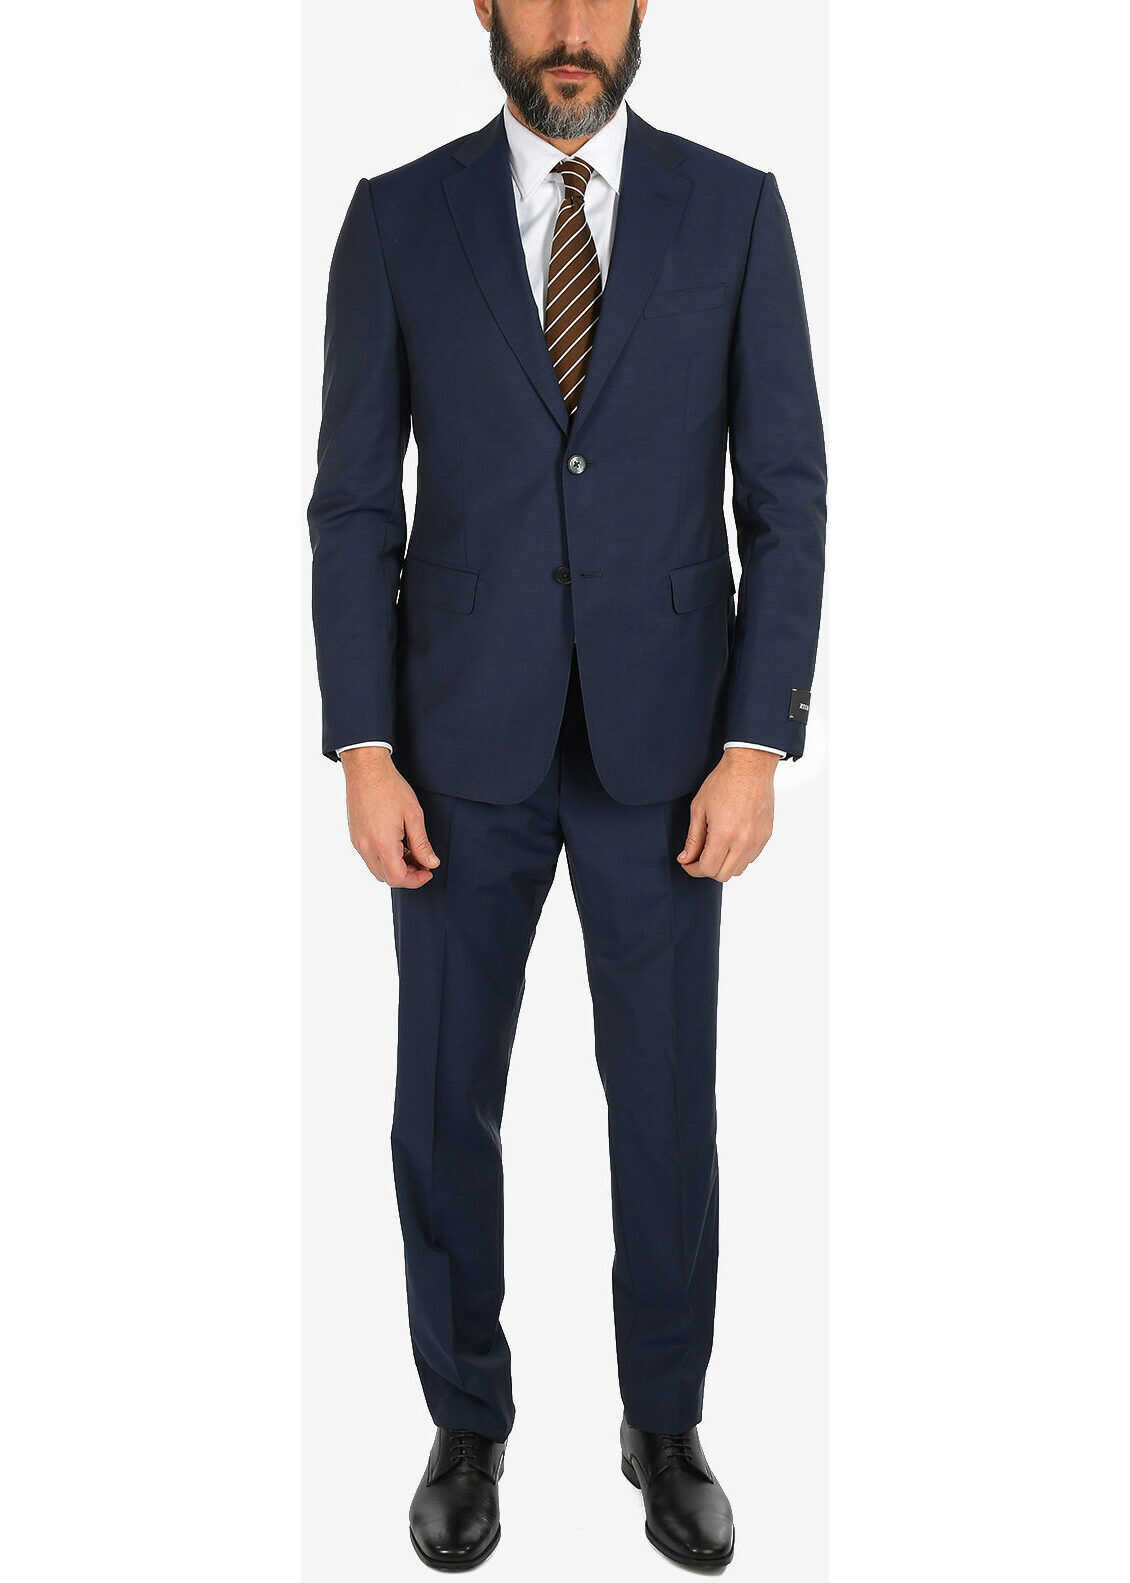 ZZEGNA Jetted Pocket Pin Check 2 Button Suit